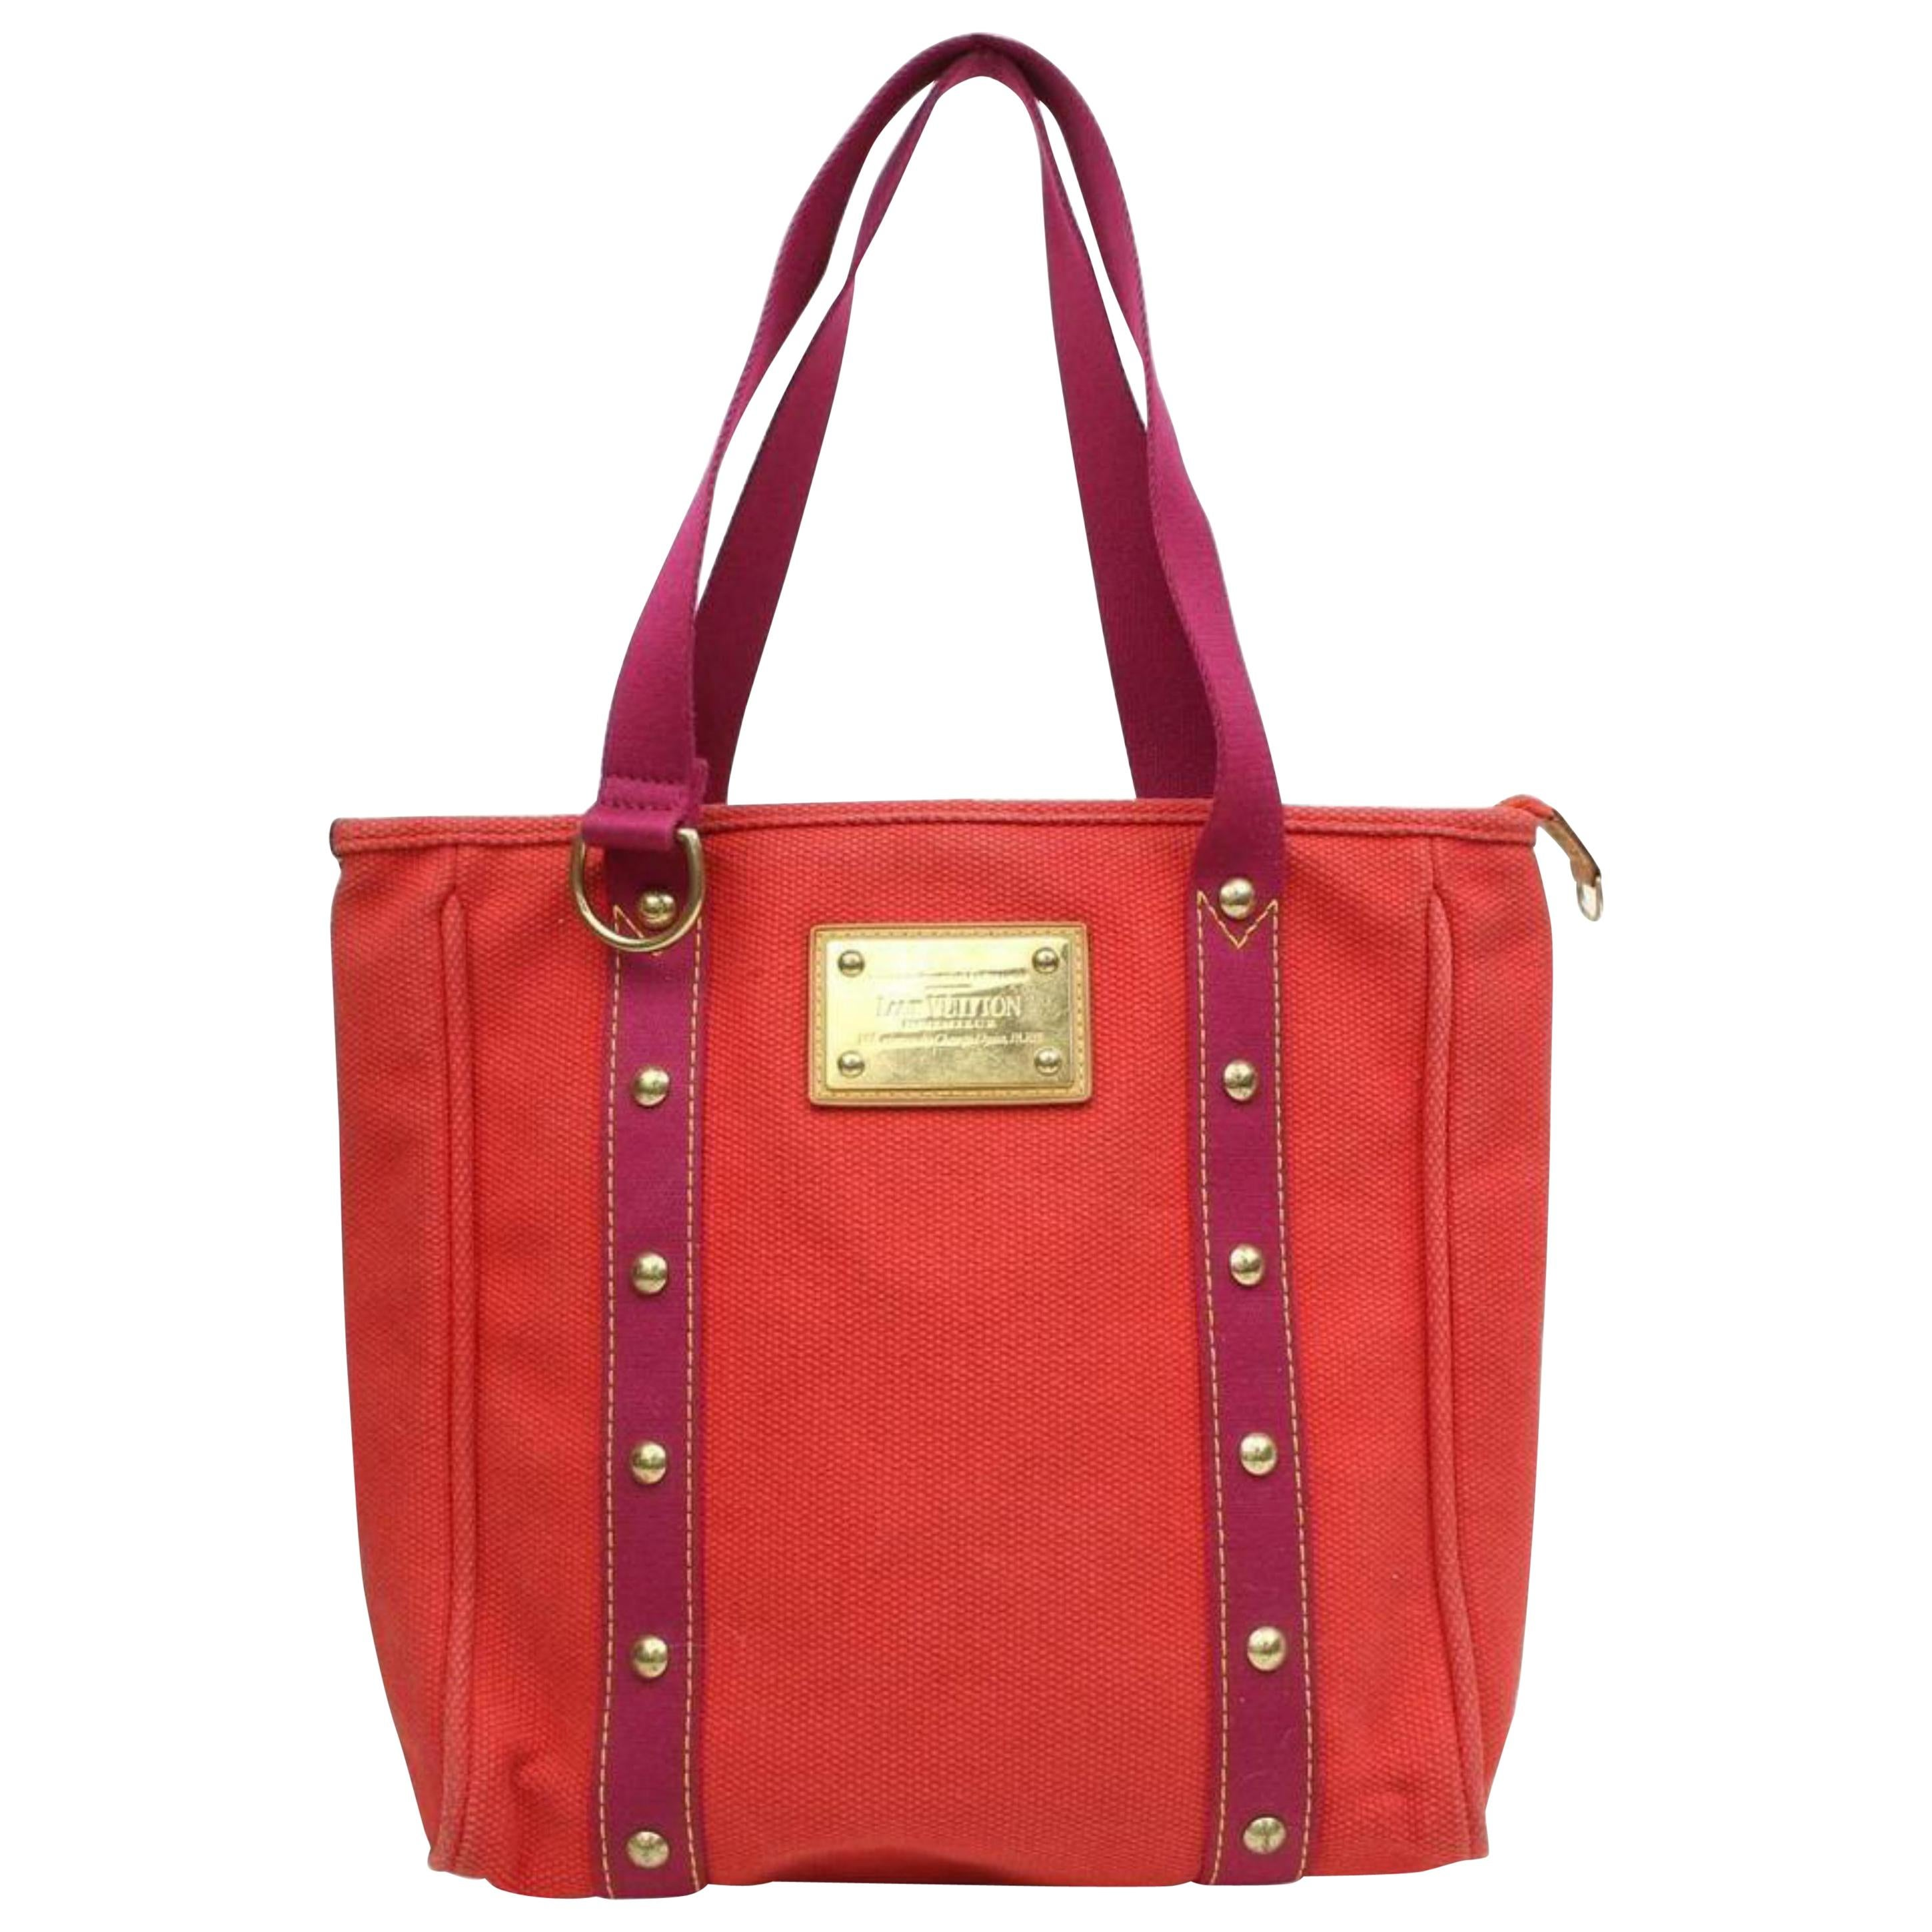 b85b9e4c6b18 Vintage Louis Vuitton Tote Bags - 705 For Sale at 1stdibs